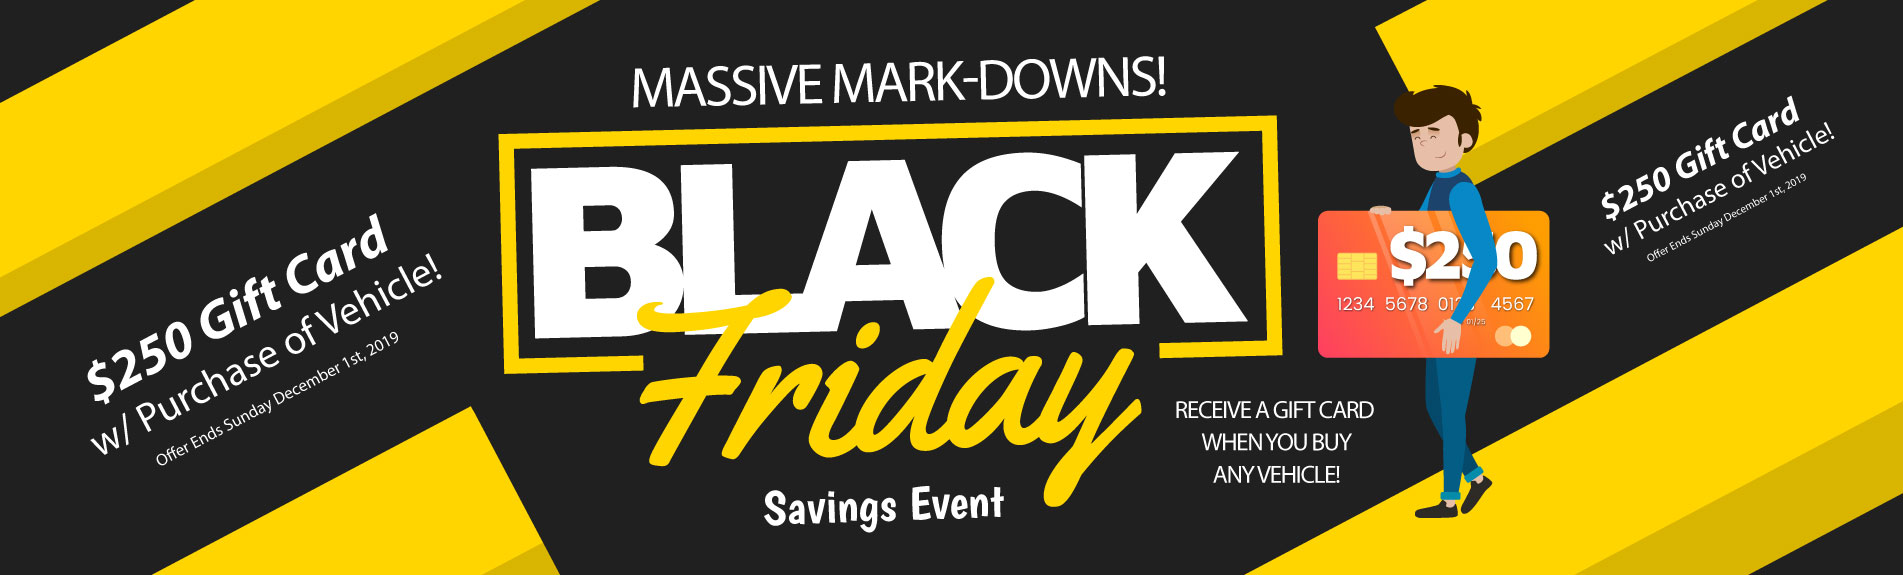 Black Friday Savings Event